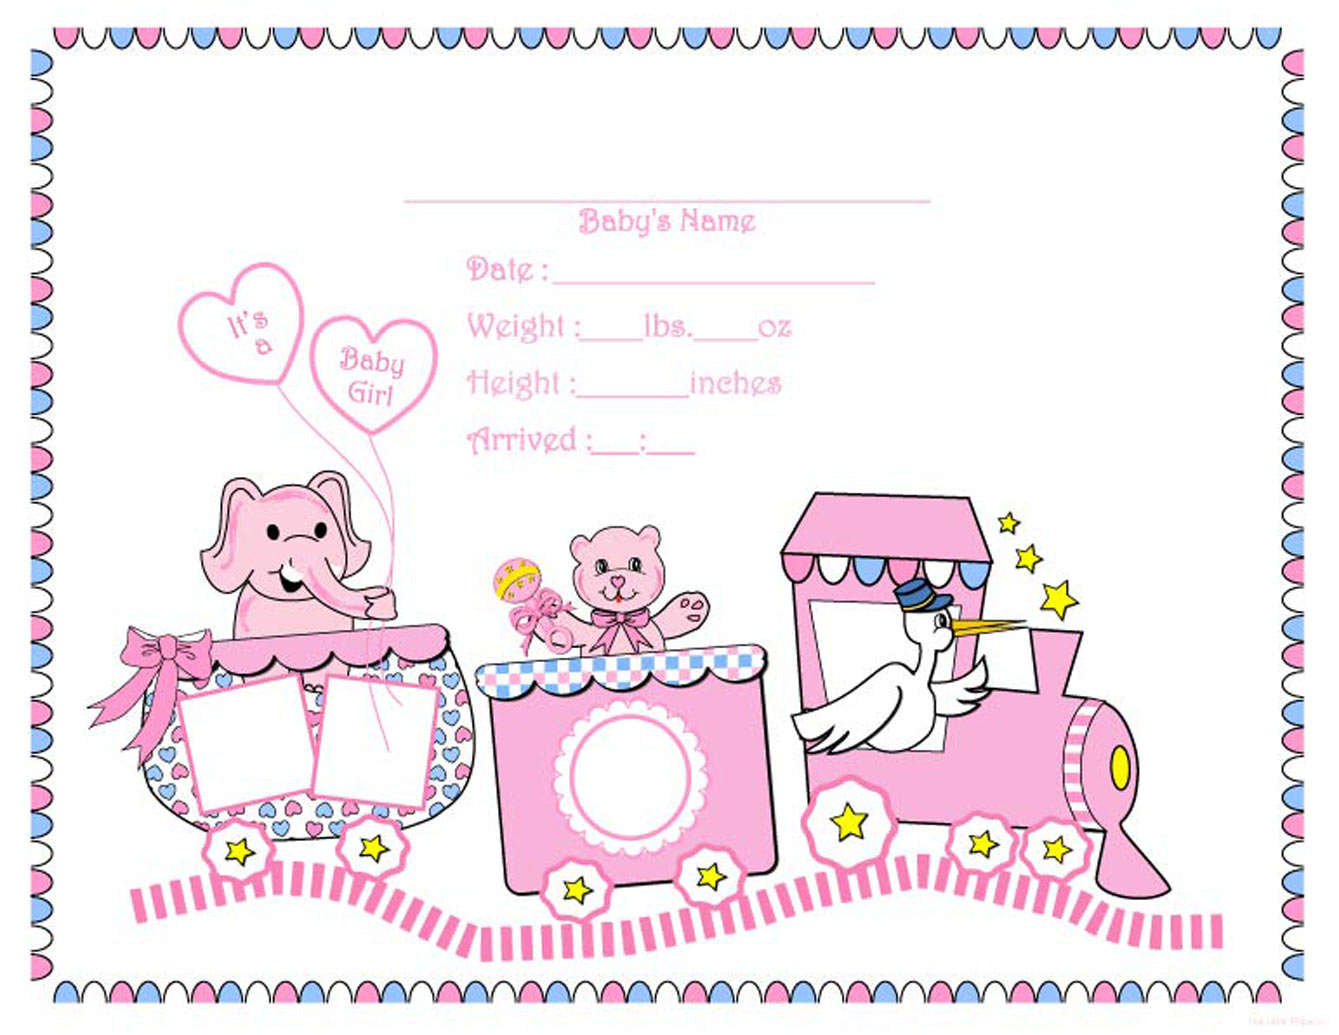 Birth Certificate Blank Printable For Girls Free printable, digital ...